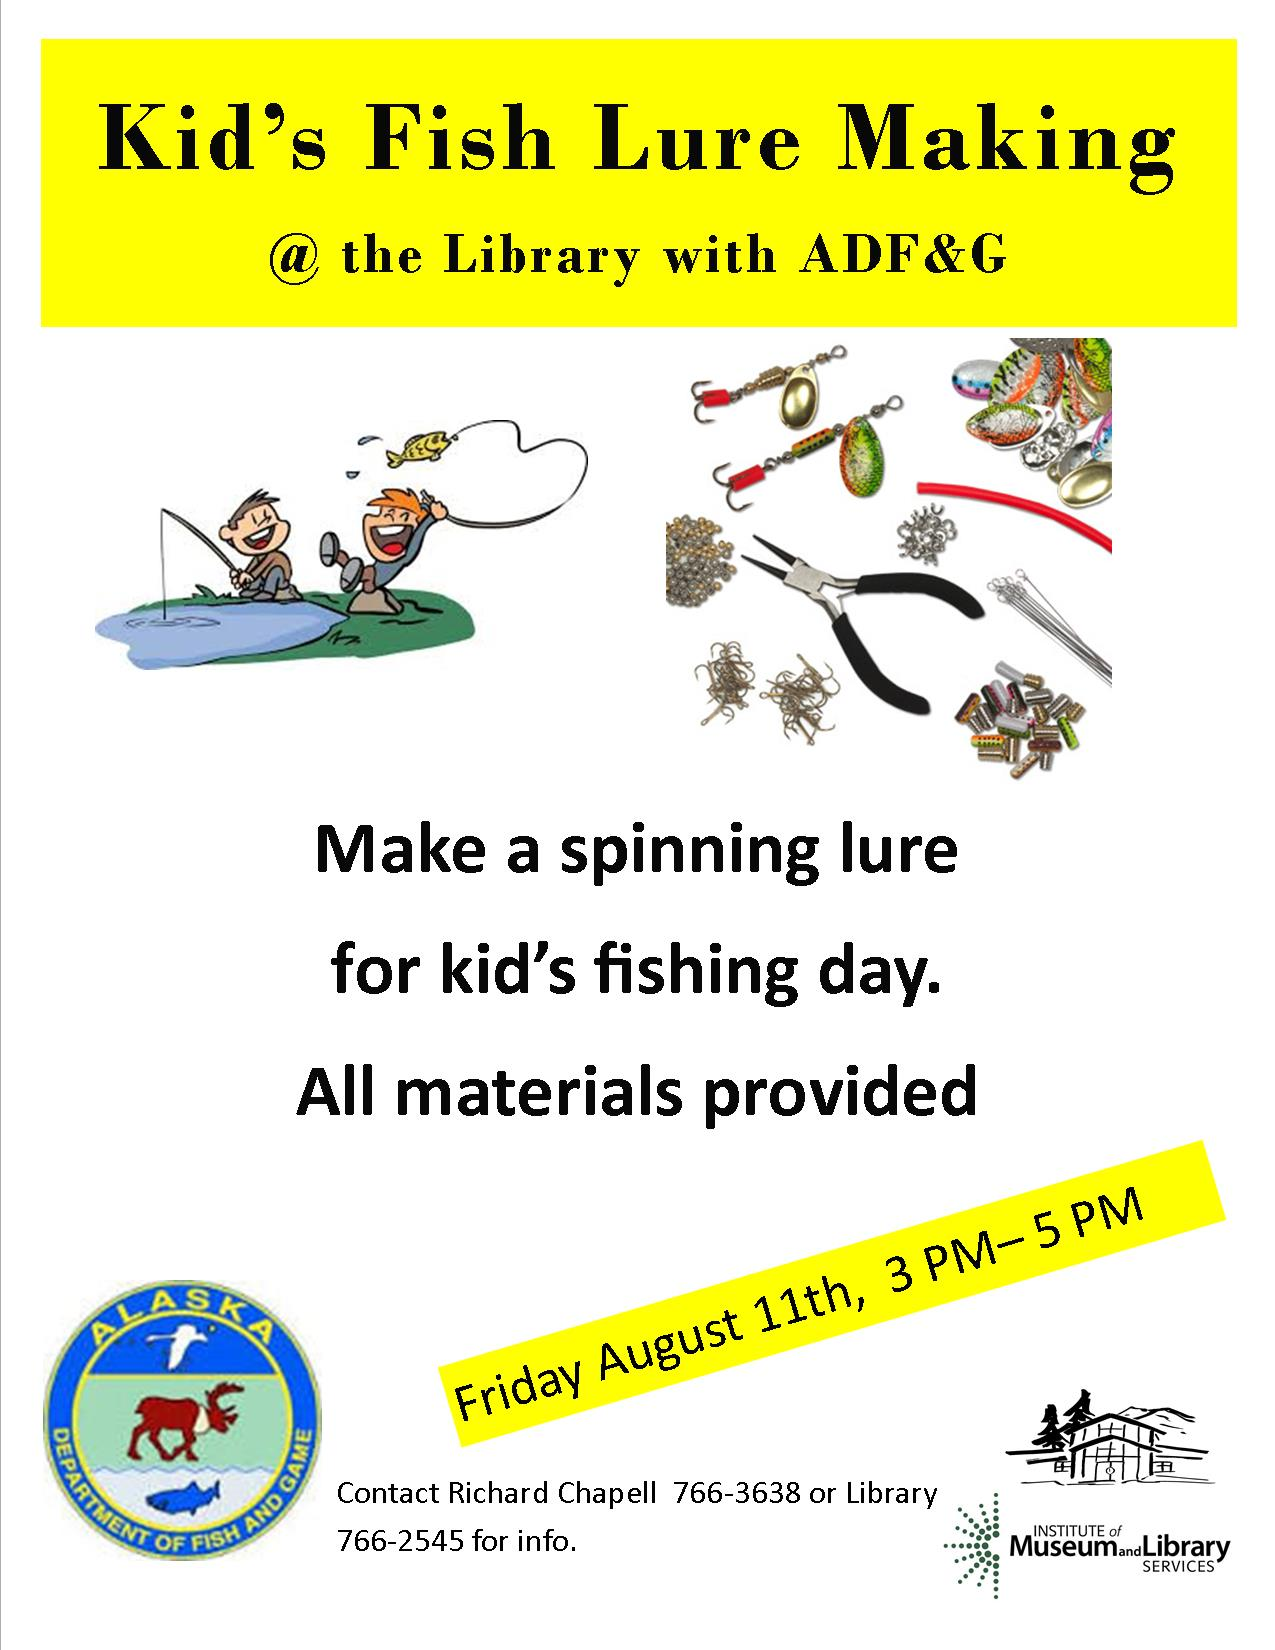 Kid's Fish Lure Making Day with ADF&G | Haines Borough Public Library